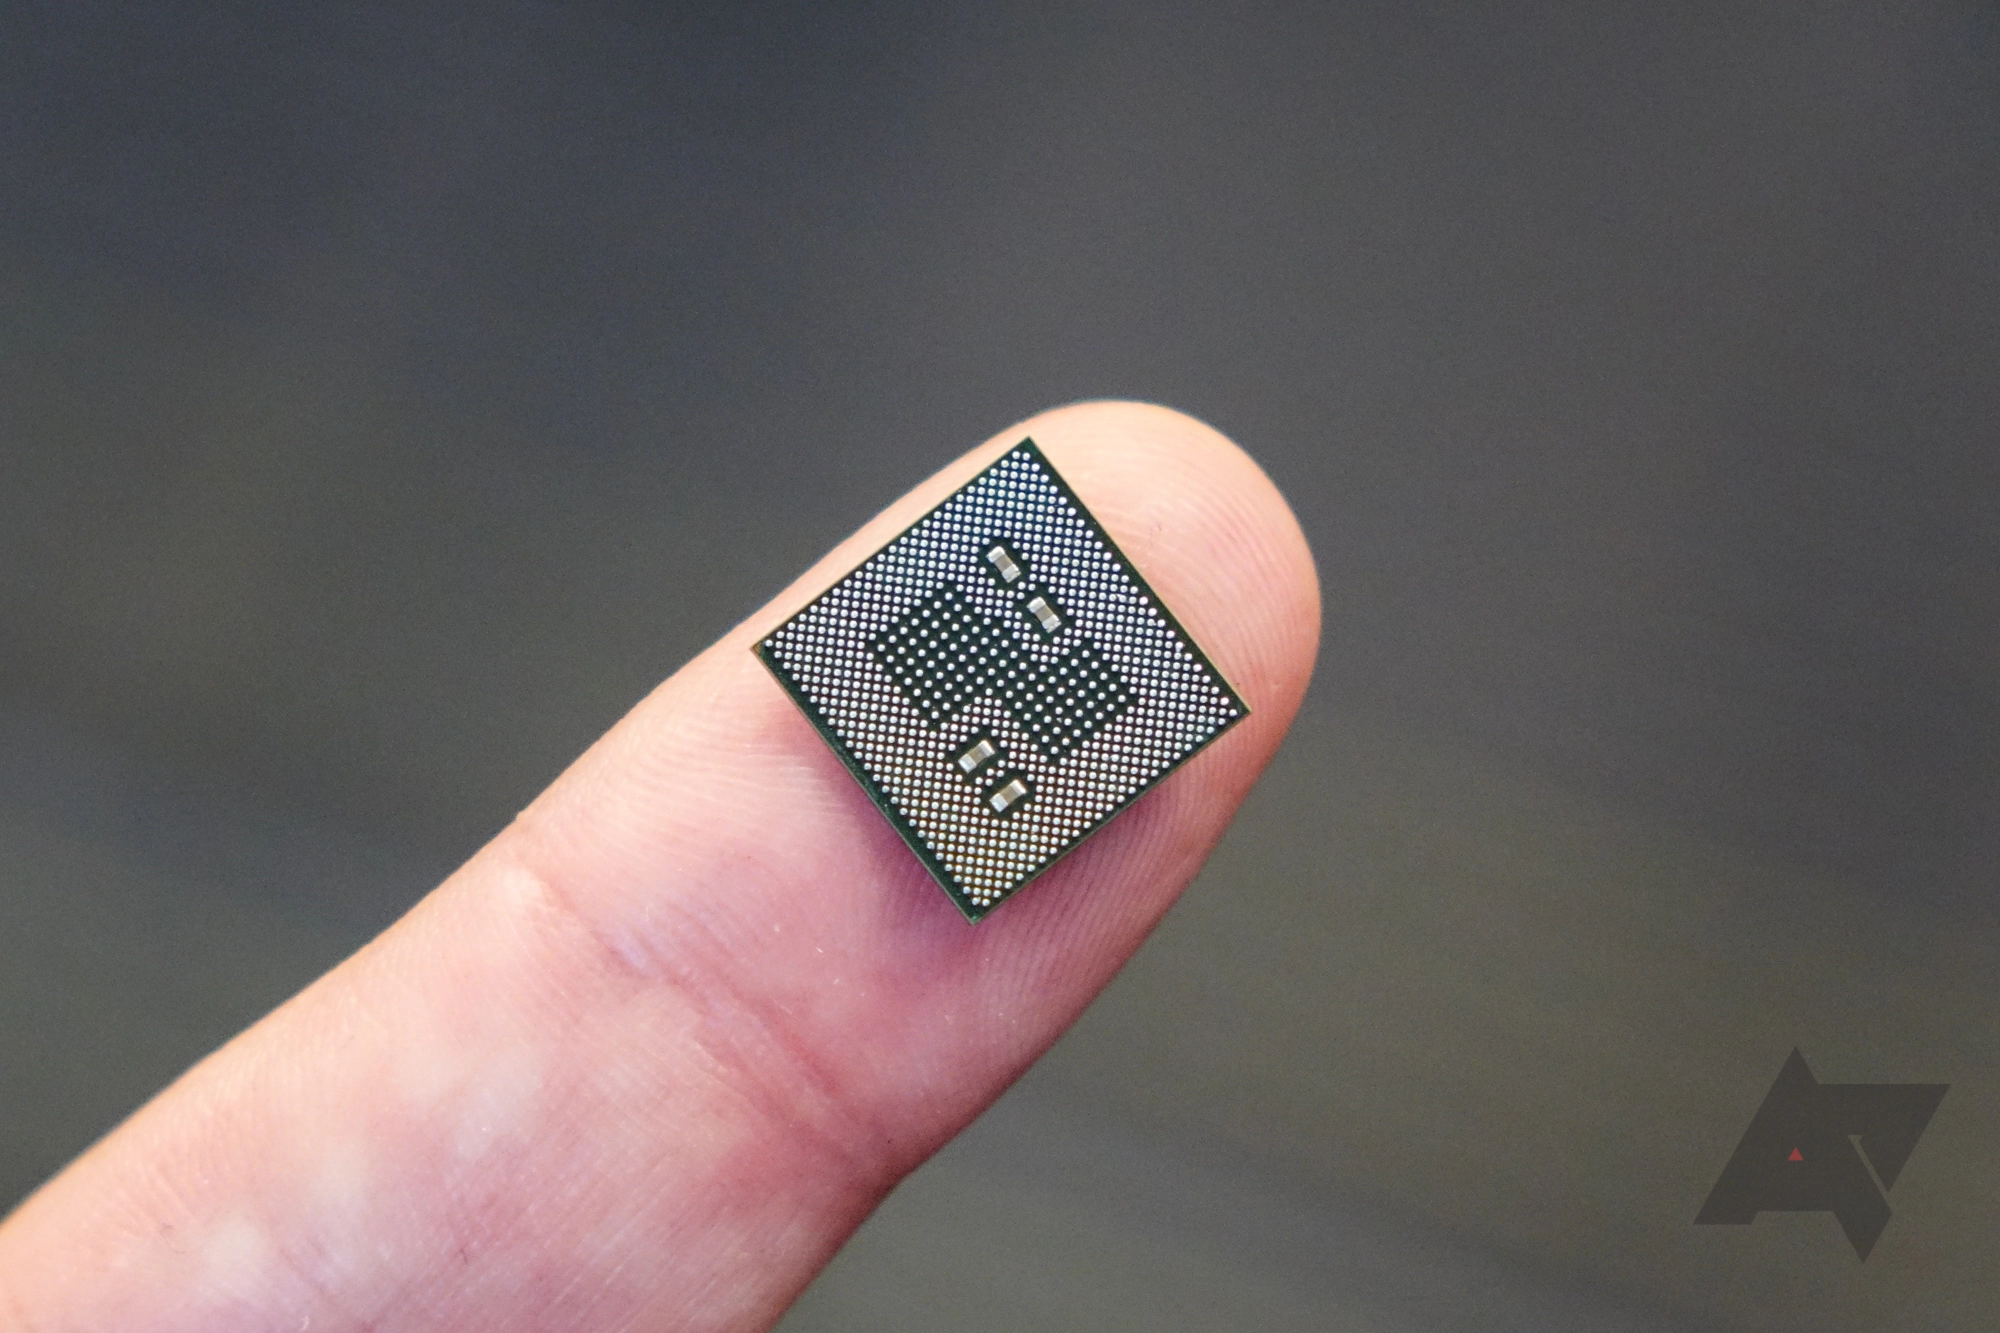 Qualcomm is building an overclocked version of the